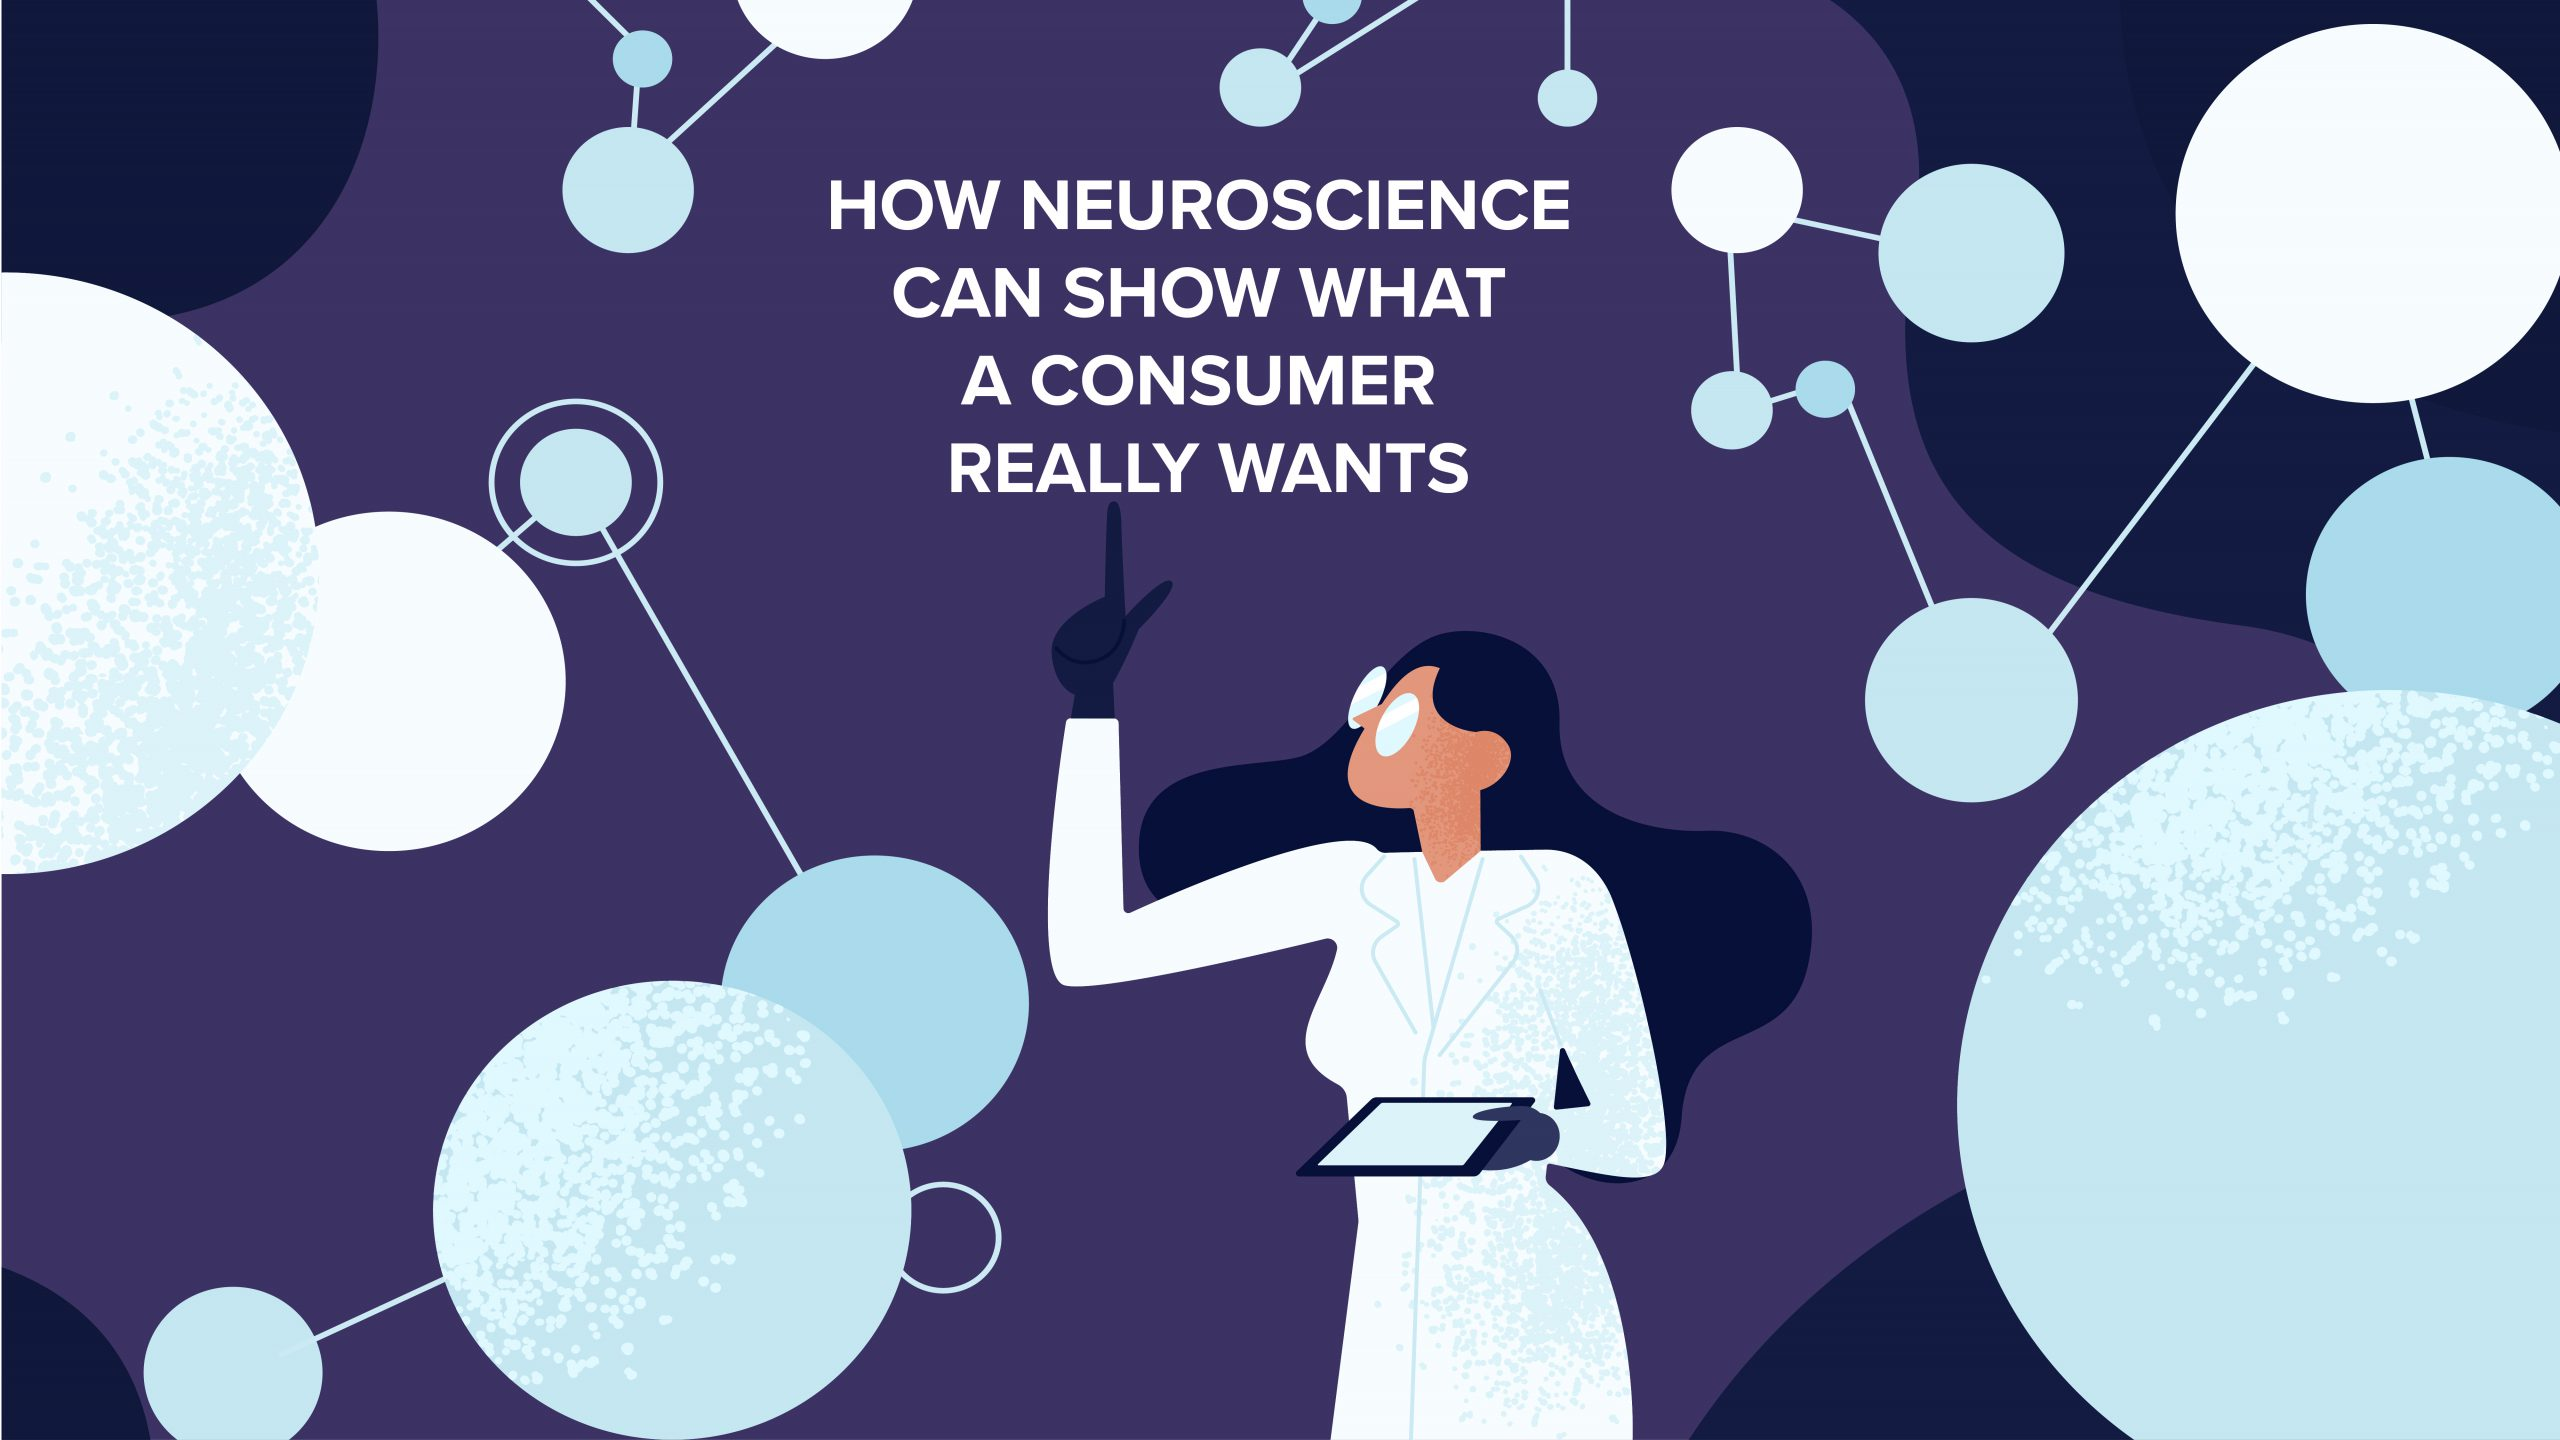 How Neuroscience Can Reveal What a Consumer Really Wants